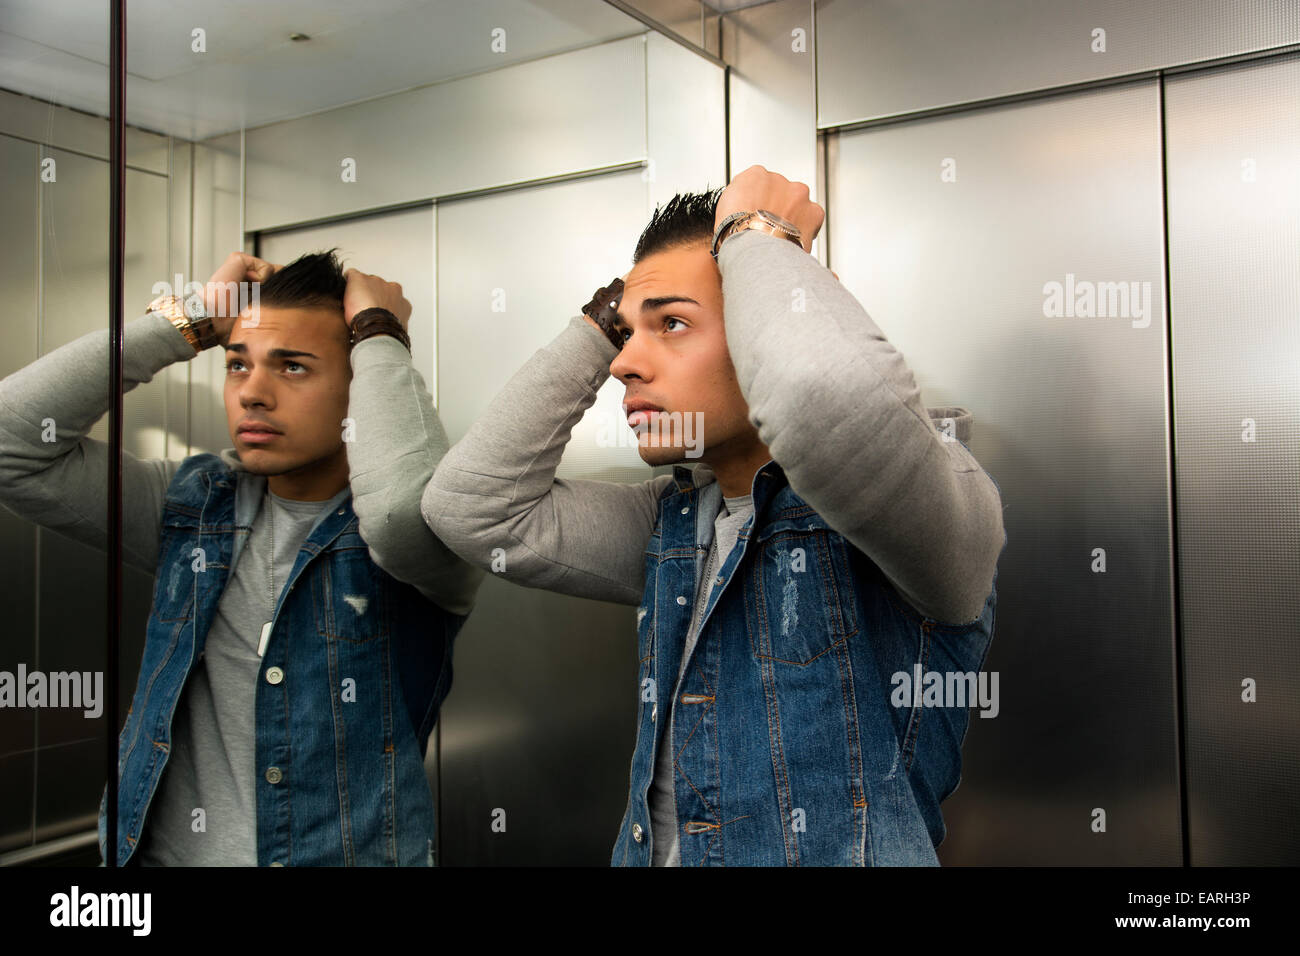 Scared young man desperate in stuck elevator with hands on his head - Stock Image